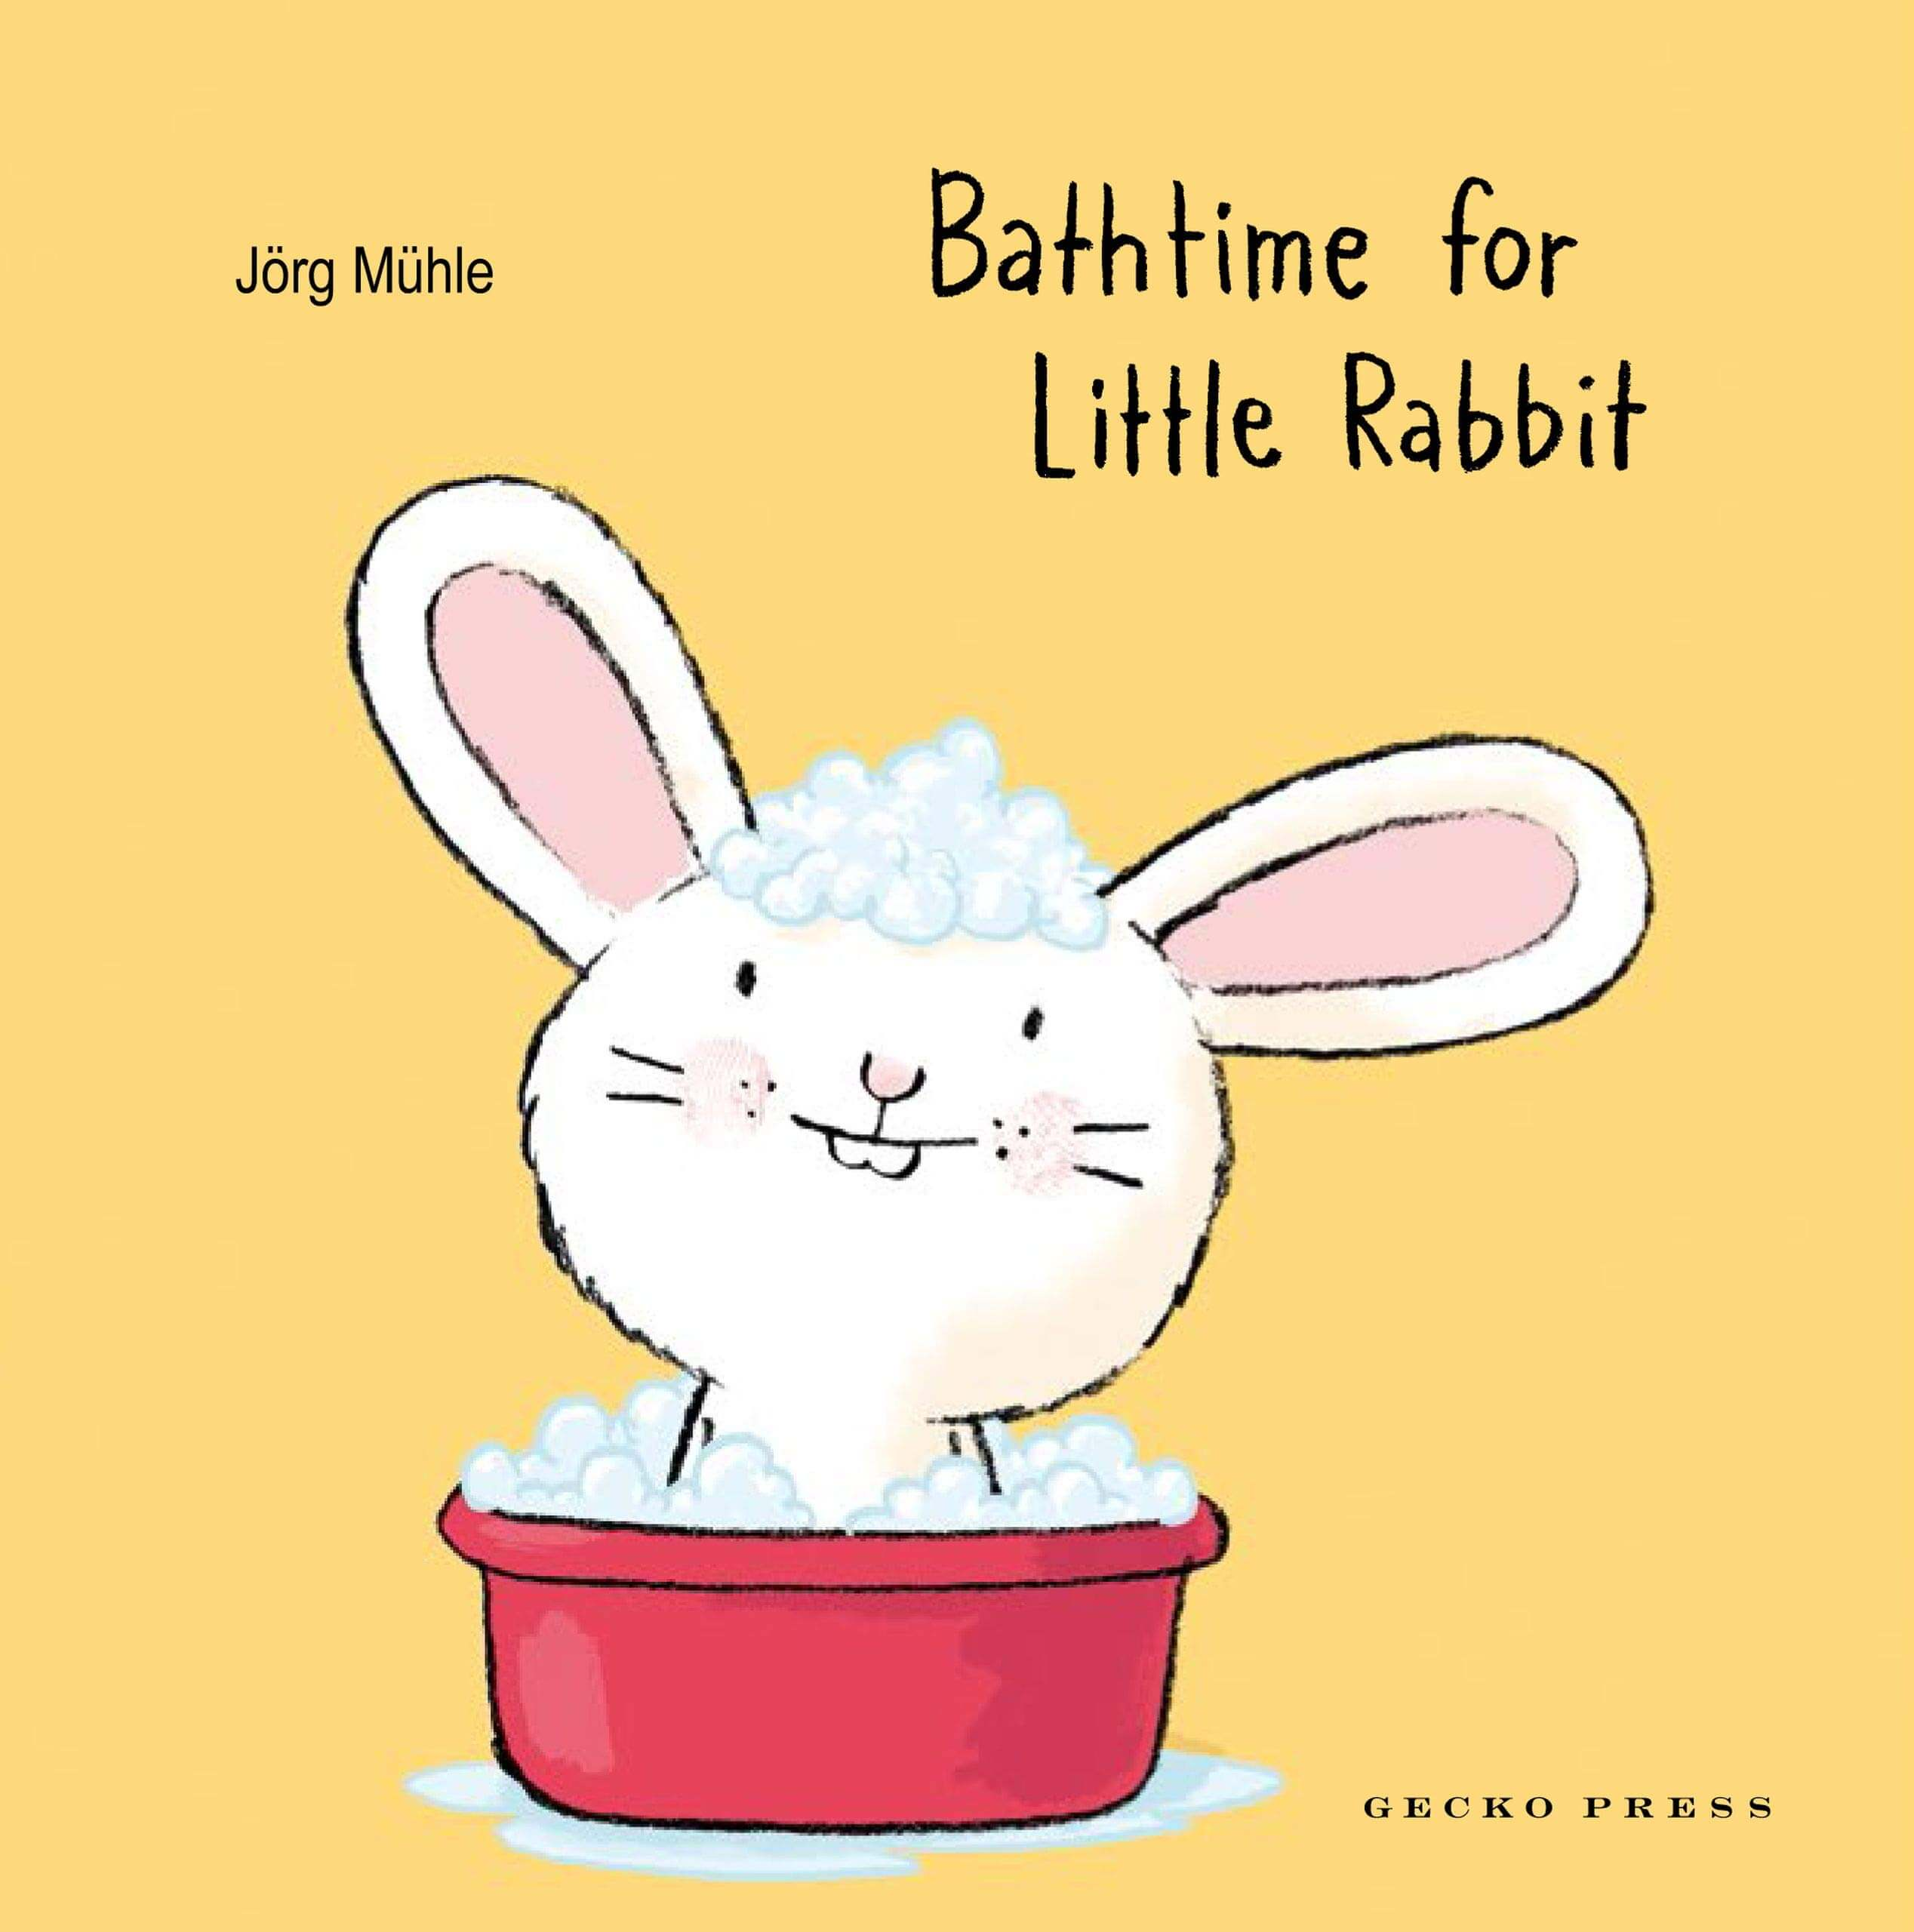 圖7.體驗故事 Bathtime for little rabbit